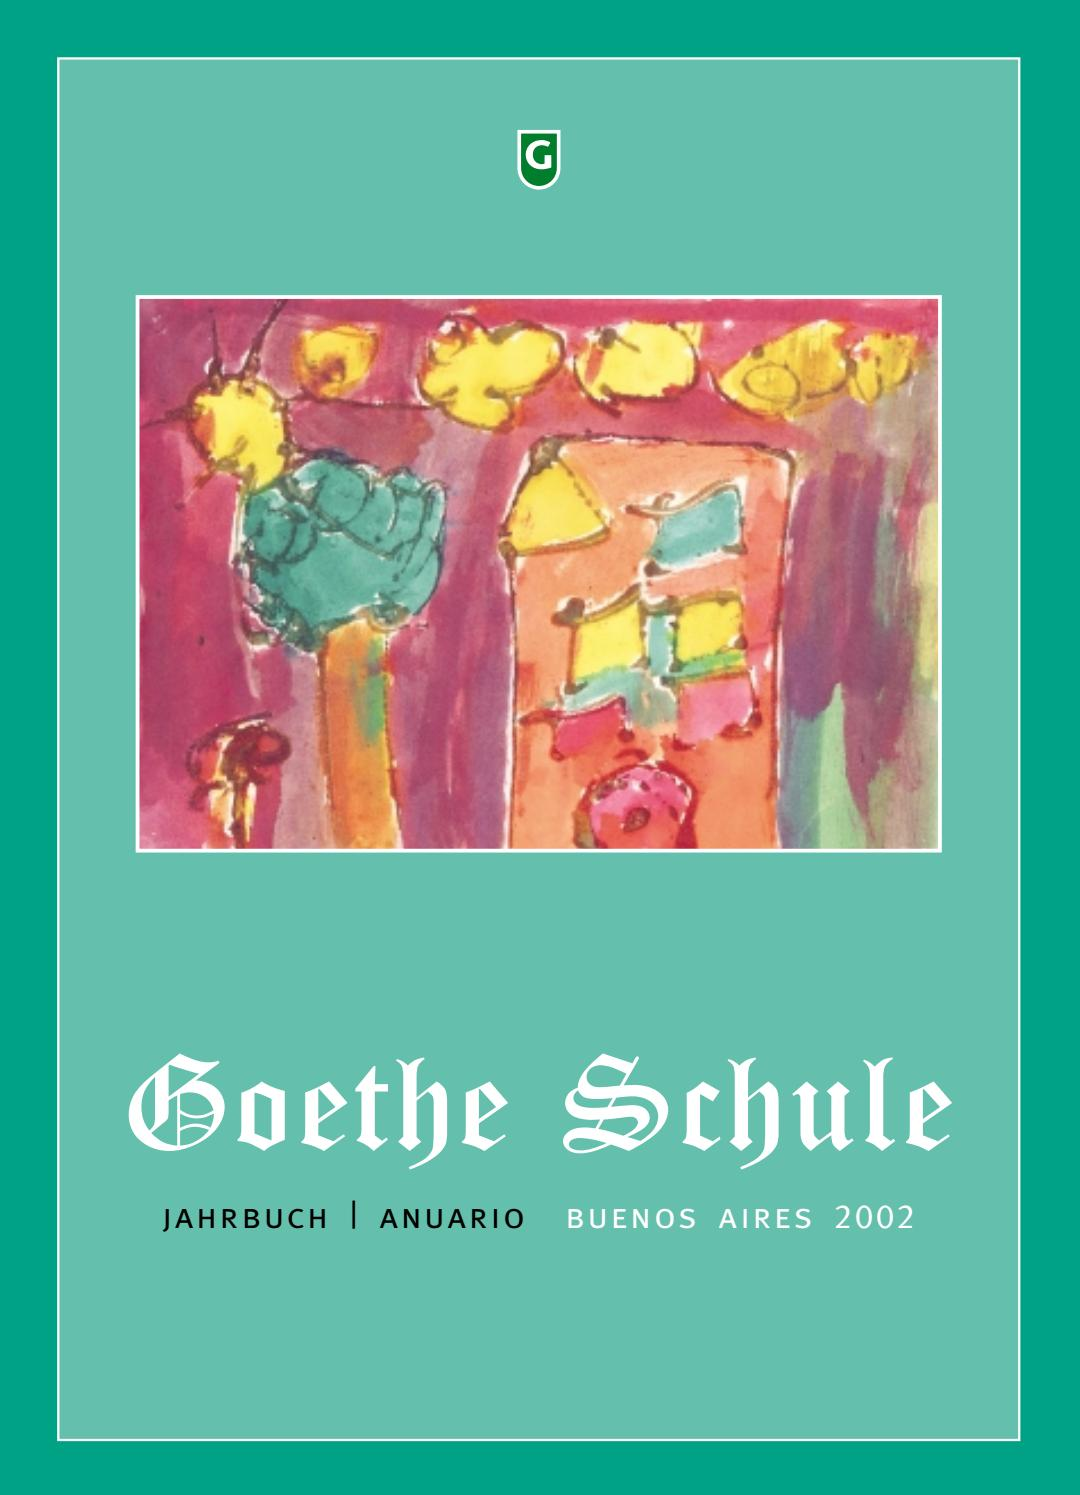 Anuario 2002 By Goethemail6 Issuu